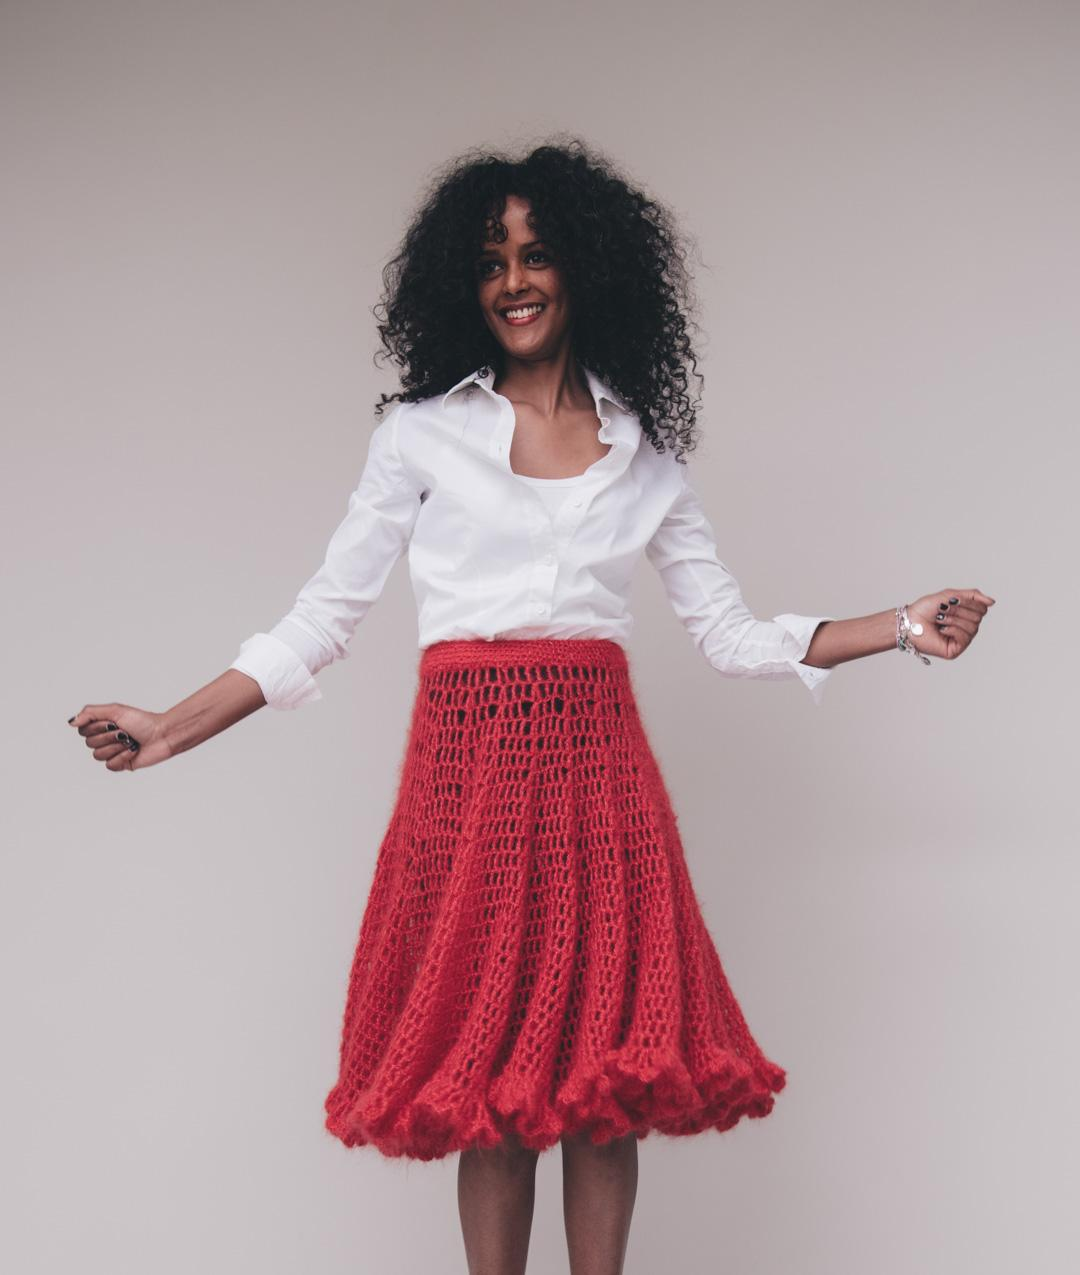 Spring 2018 Collection - Sweater and Cardigan - Let Me Dance Skirt - 1